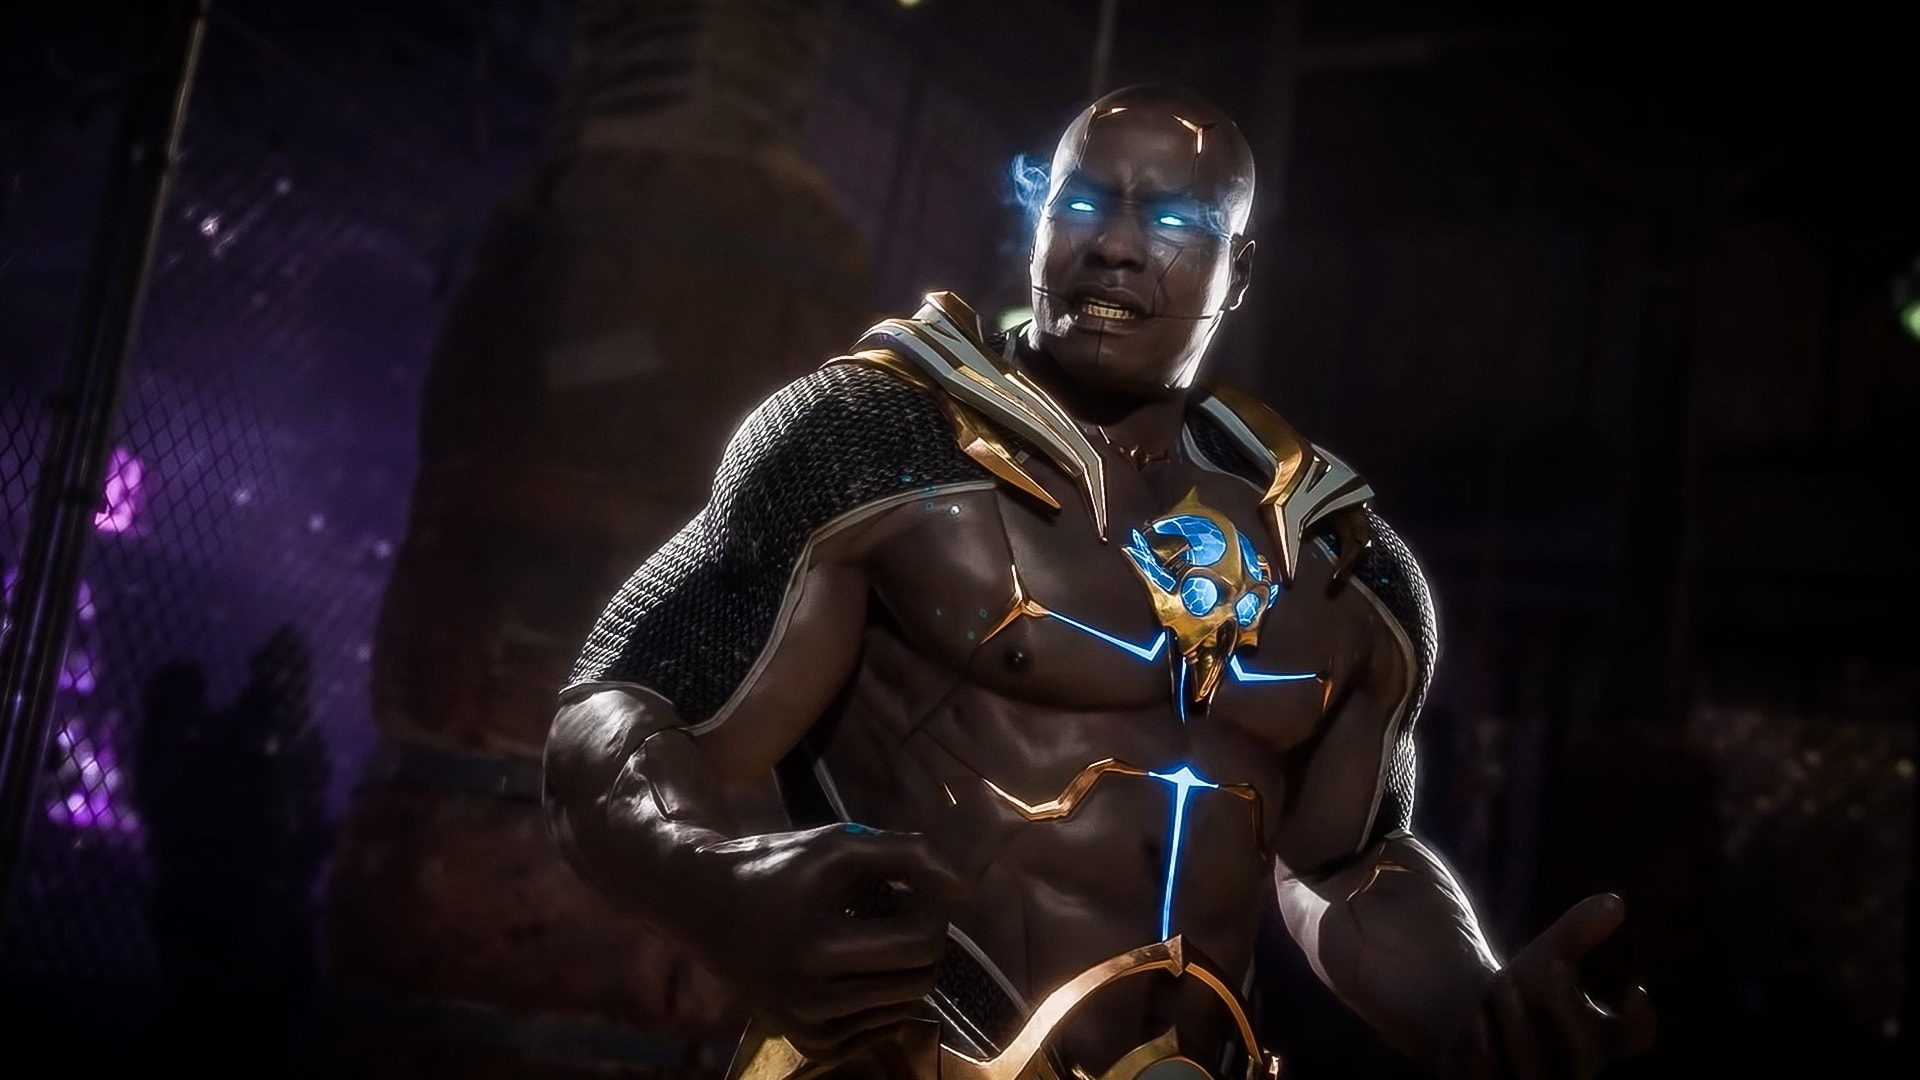 According to a representative from NetherRealm Studios, it should take you anywhere from 6 to 10 hours to beat the story mode campaign in Mortal Kombat 11, with 8 hours being the average completion time. © NetherRealm Studios